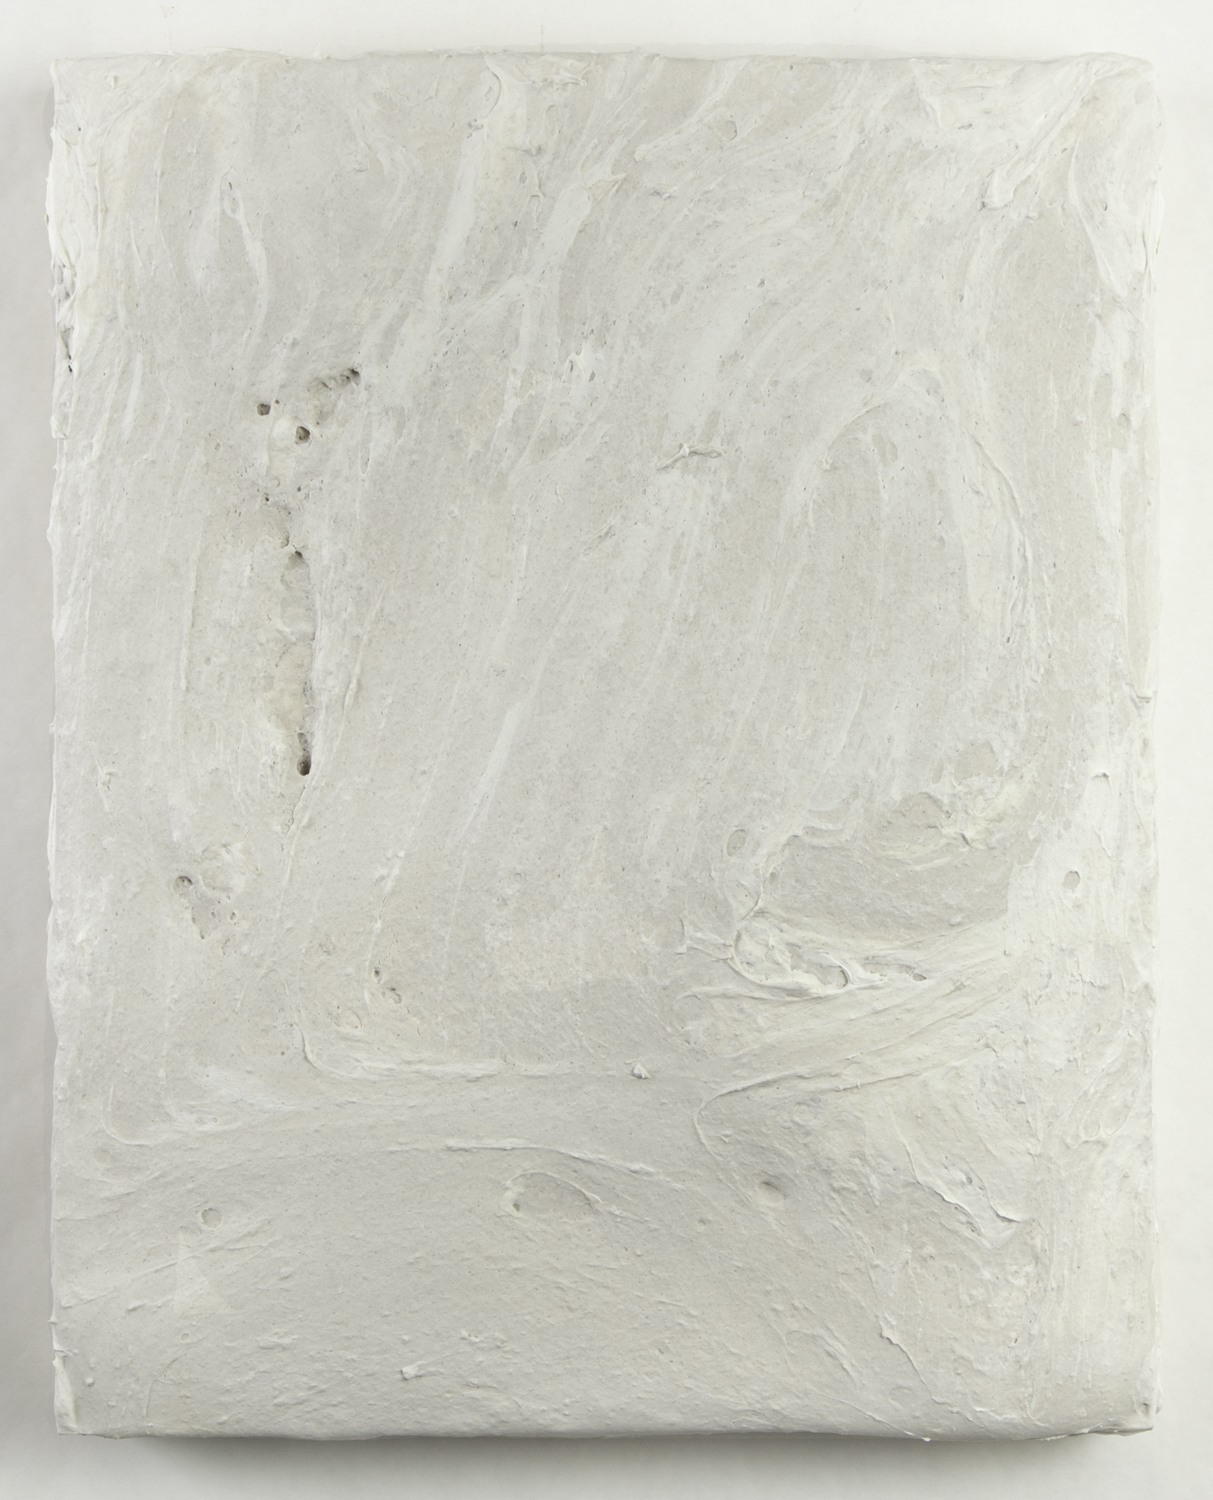 marble dust  2011 mixed media on wood 20 X 16 X 2.75 inches